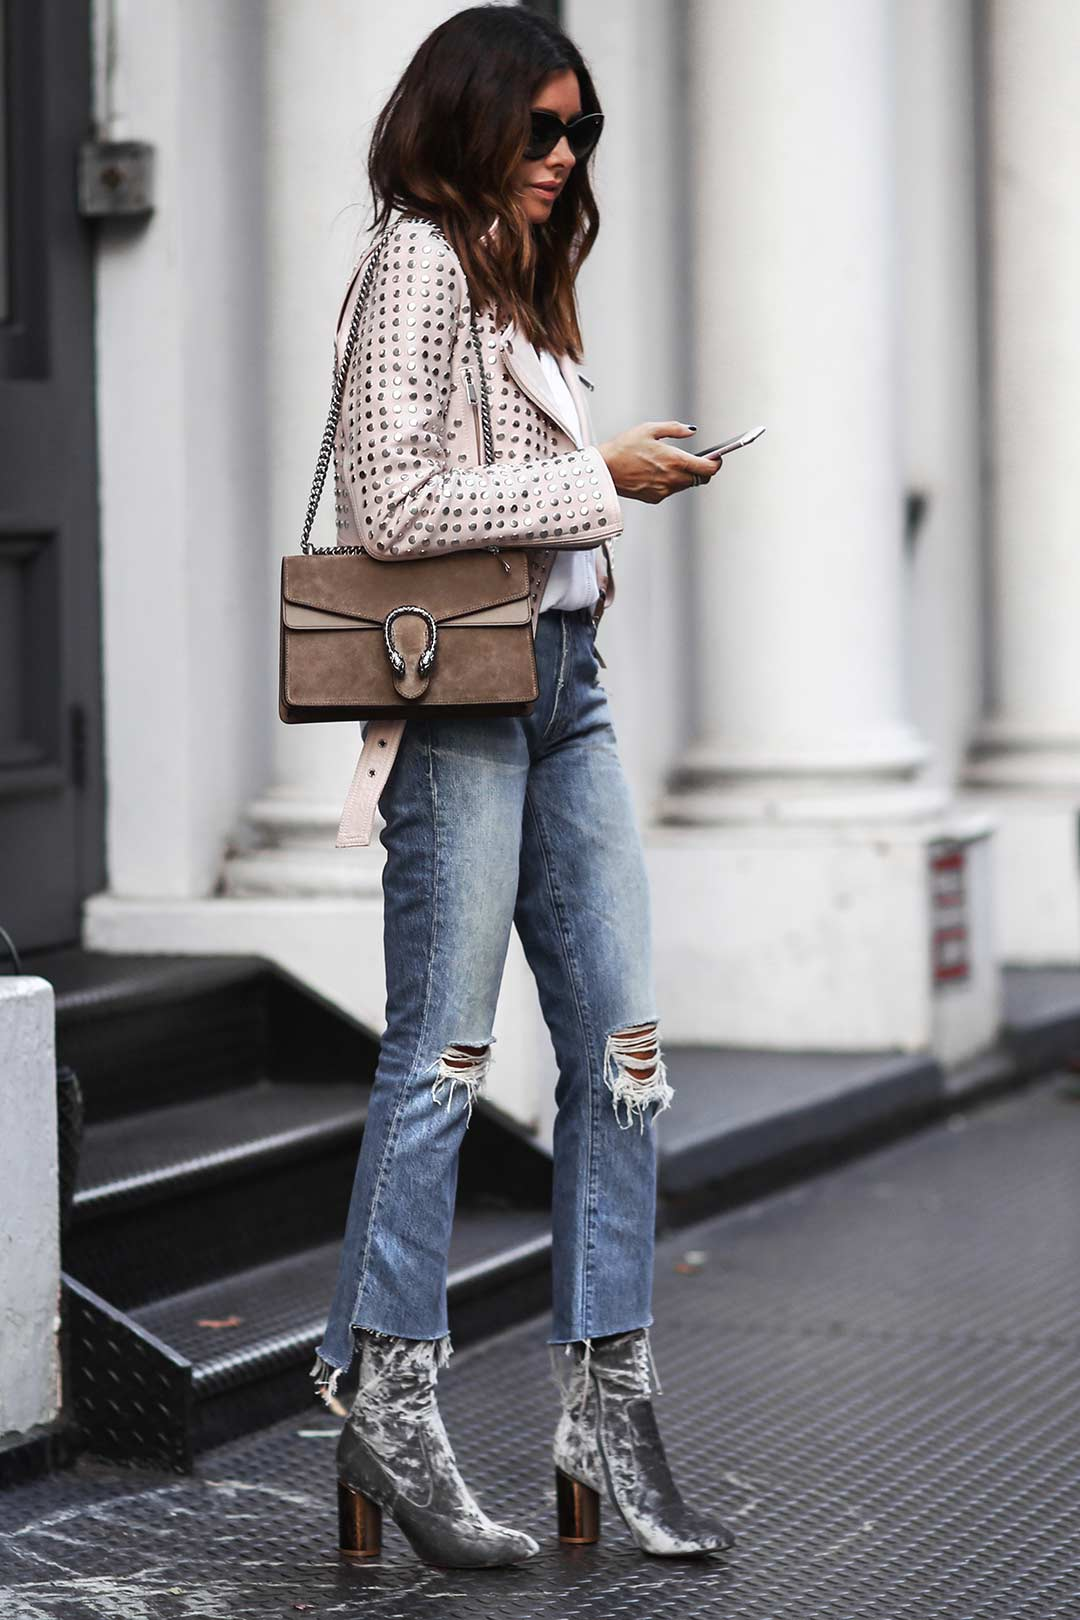 fashioned-chic-jeans